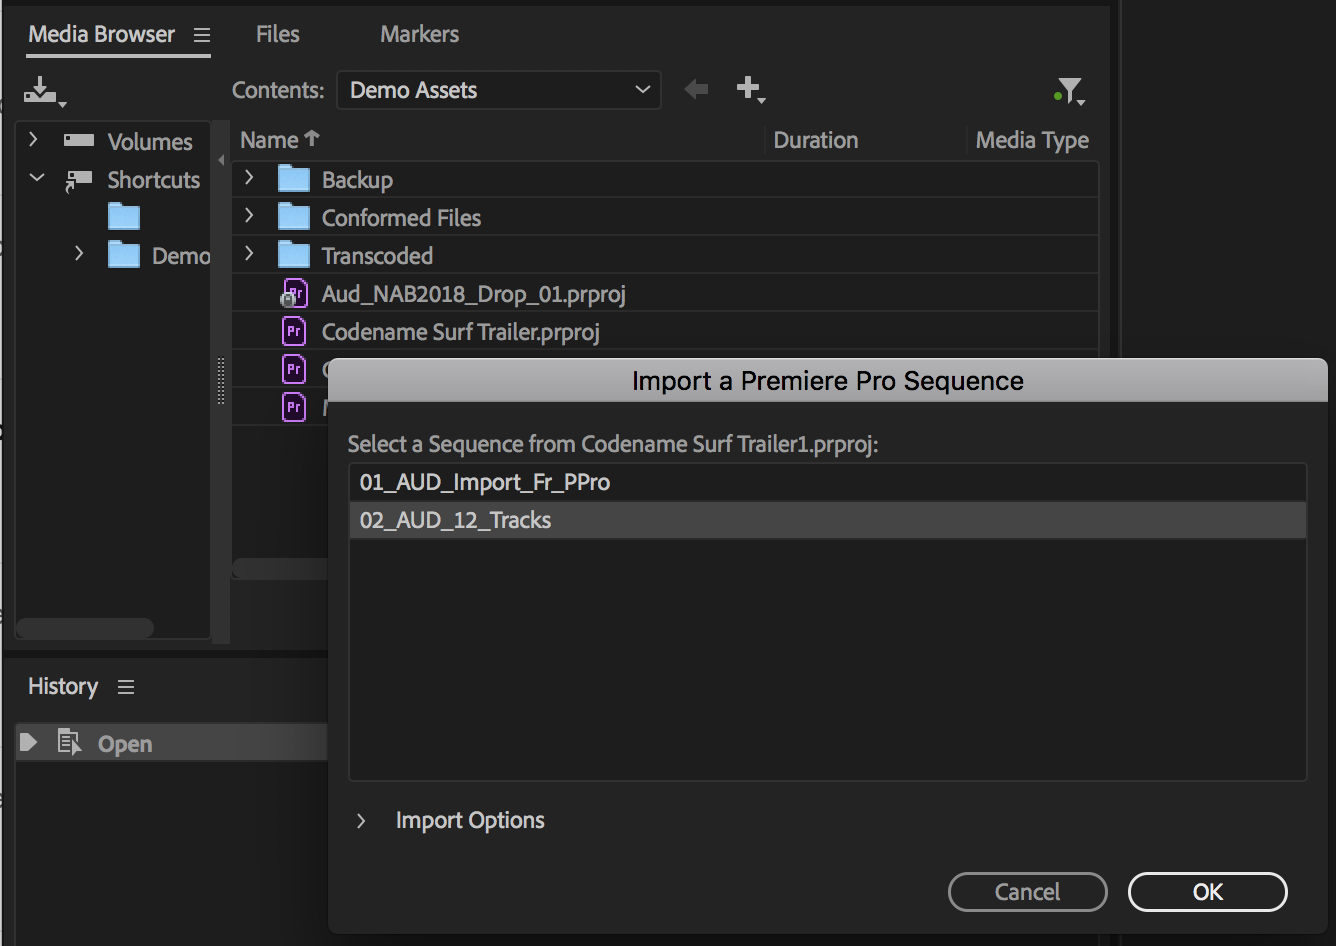 Premiere Pro sequence import